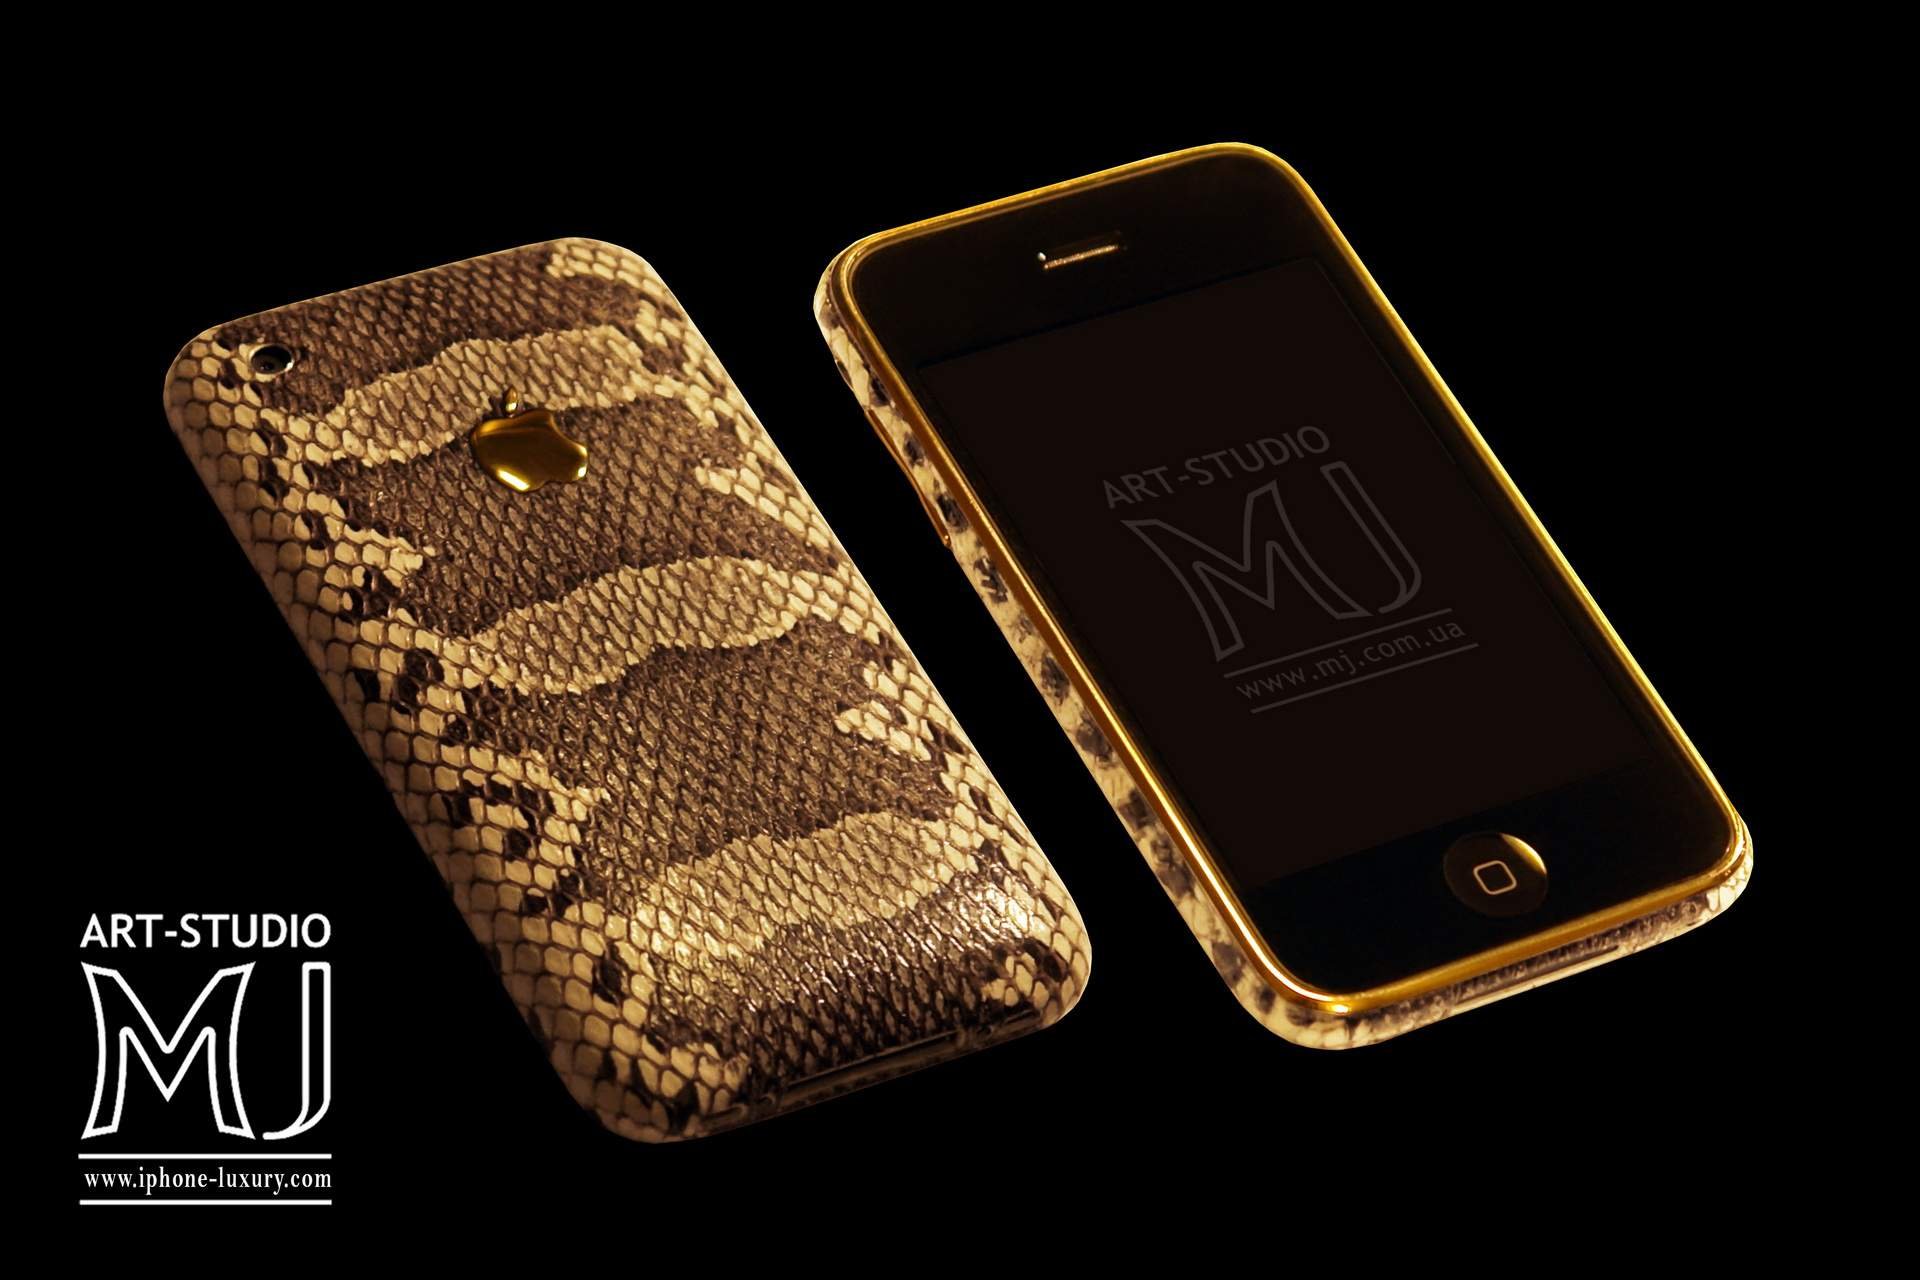 http://www.mj.com.ua/pic/black/290212/Mobile/Apple%20iPhone/Apple%20iPhone%203G%20MJ%20Leather%20Gold%20Python%2016gb%20777.jpg